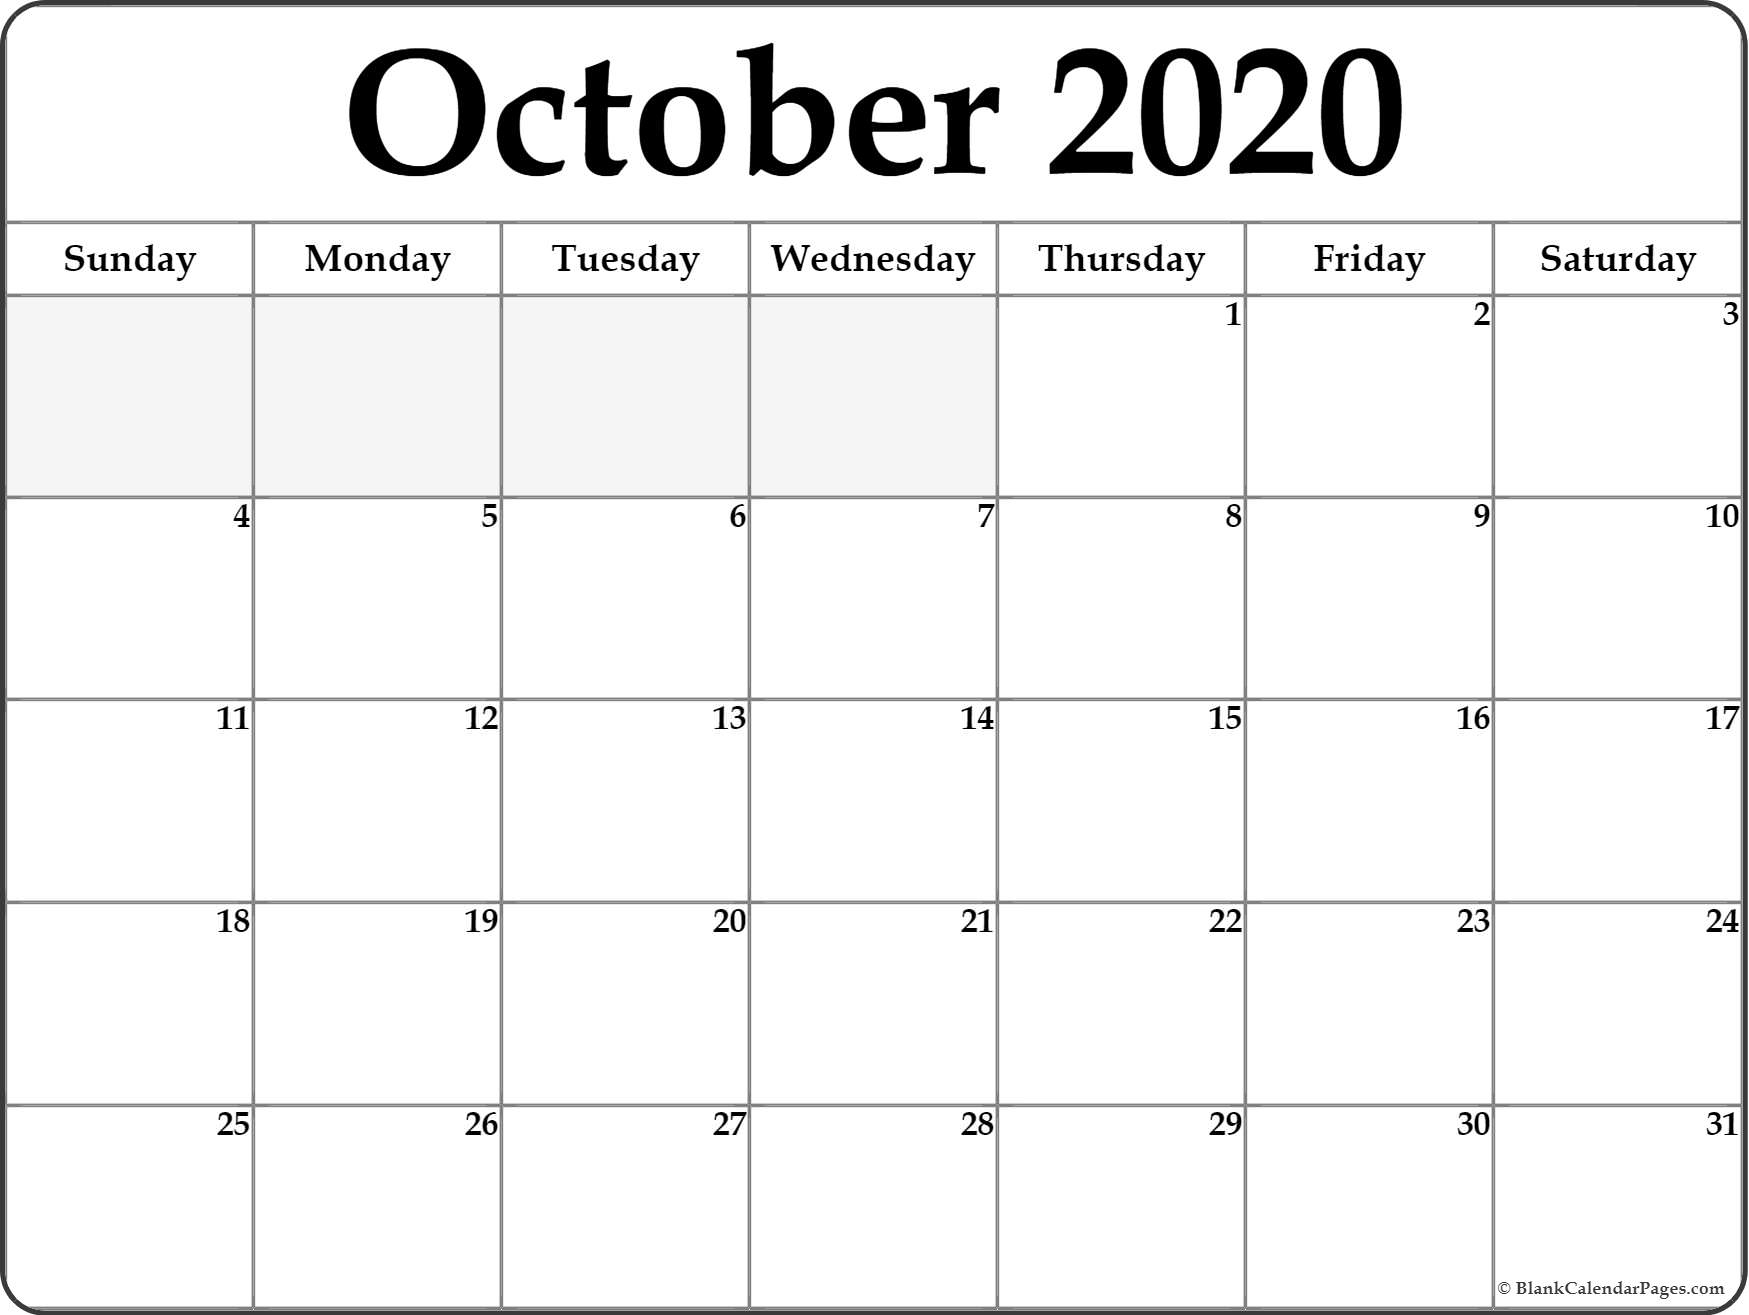 October 2020 Calendar | Free Printable Monthly Calendars within Blank Calendar For Sept